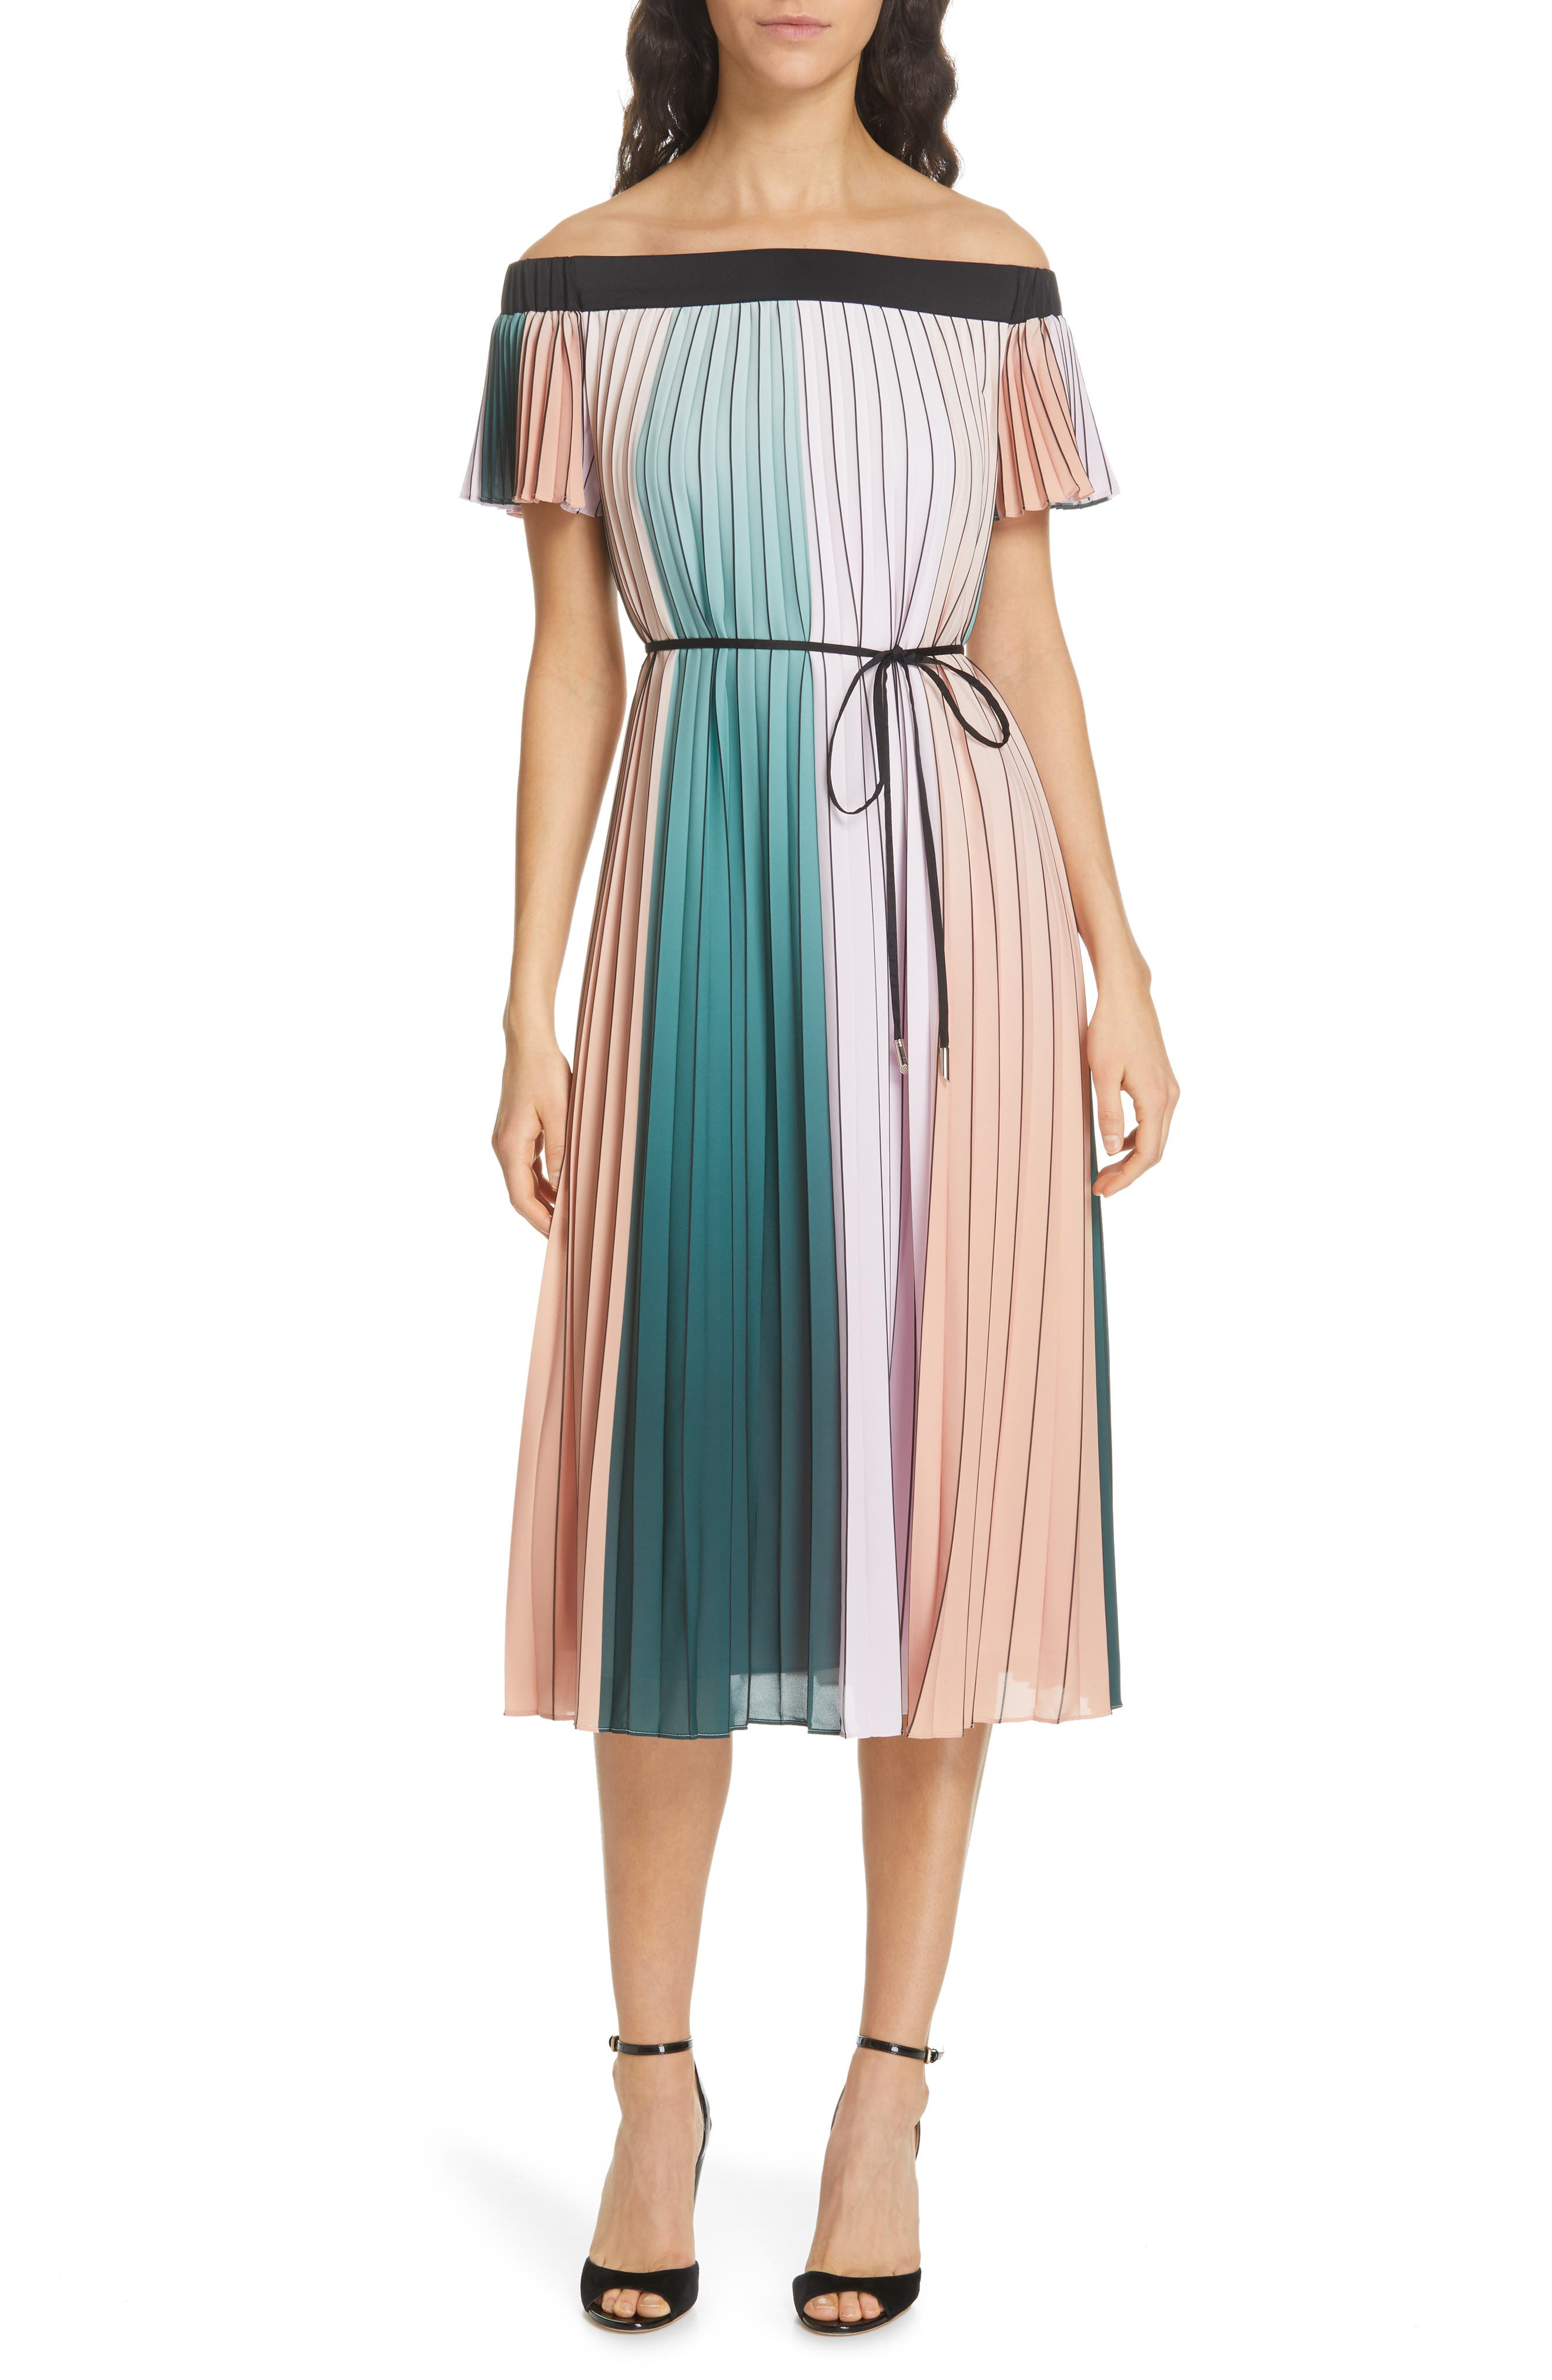 TED BAKER LONDON, Fernee Colorblock Pleated Dress, Main thumbnail 1, color, LILAC